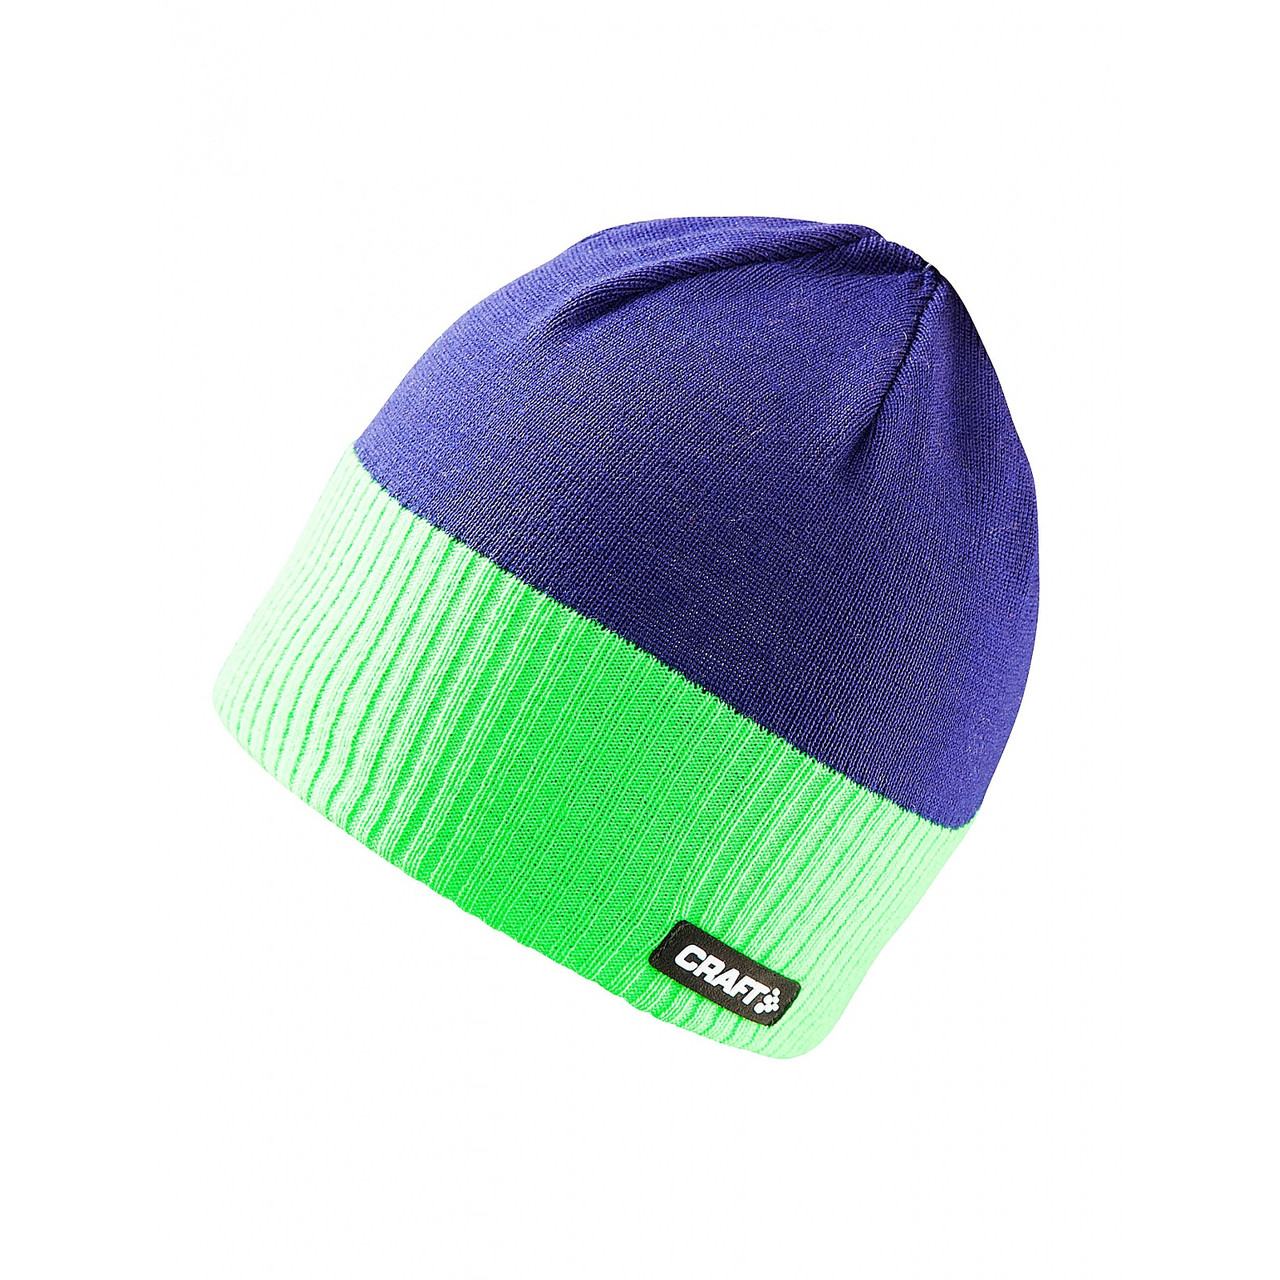 Craft Bormio Hat - 2016 price